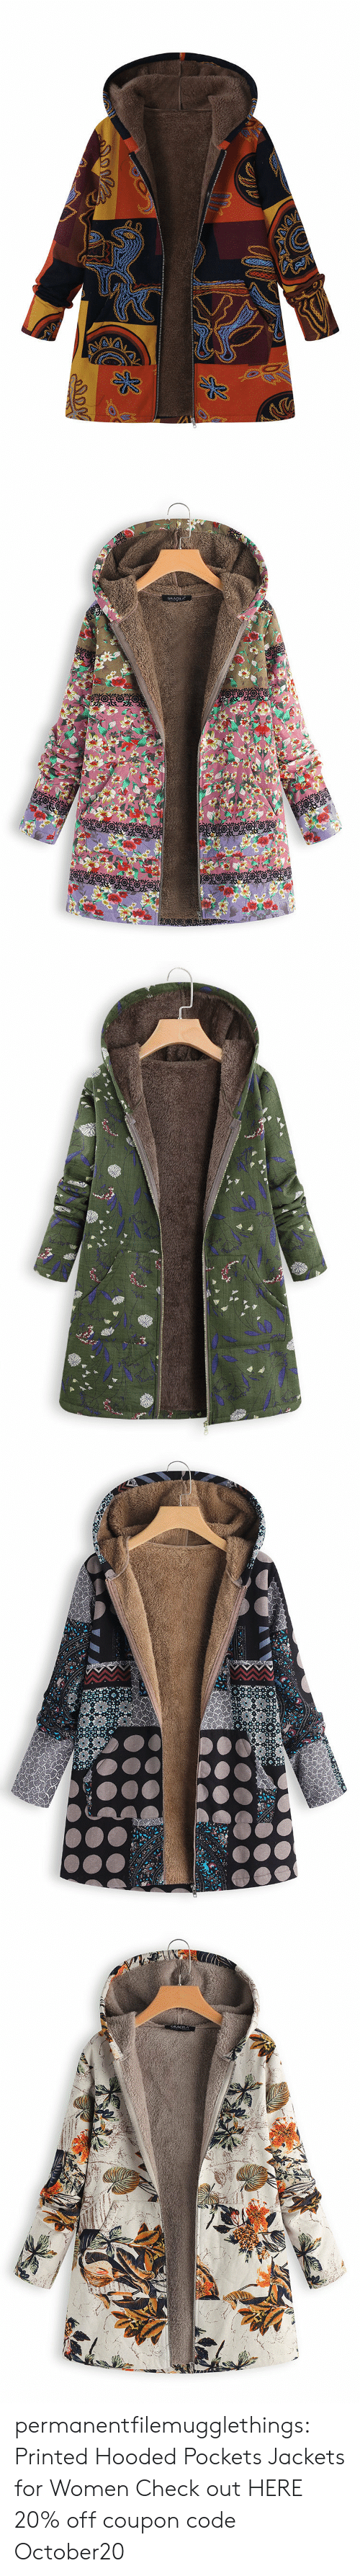 Tumblr, Blog, and Women: Opoo   GRACILA   w  וadll  -ו3 y permanentfilemugglethings: Printed Hooded Pockets Jackets for Women  Check out HERE  20% off coupon code:October20